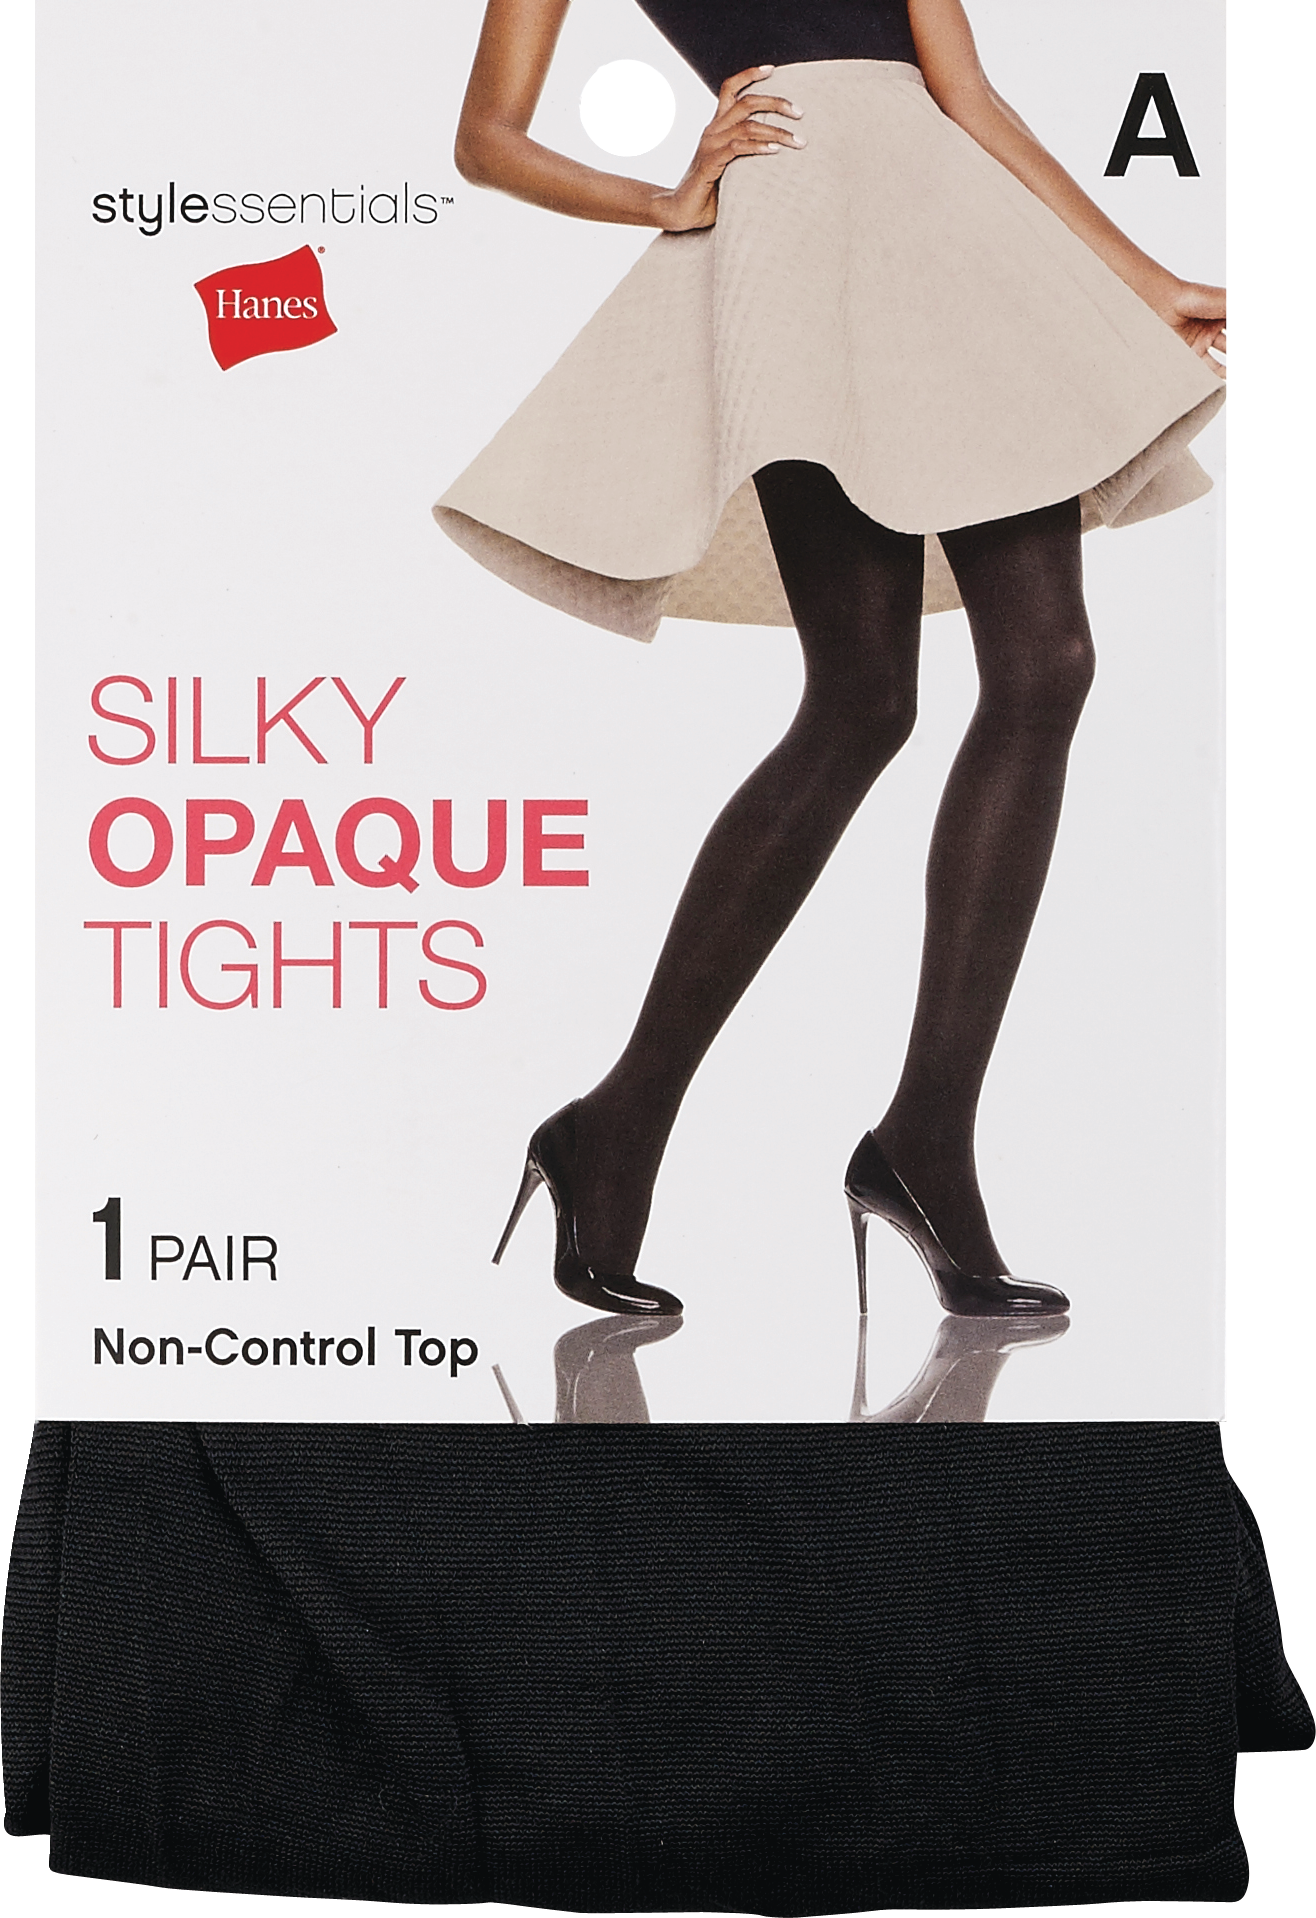 The tights which are non-control top